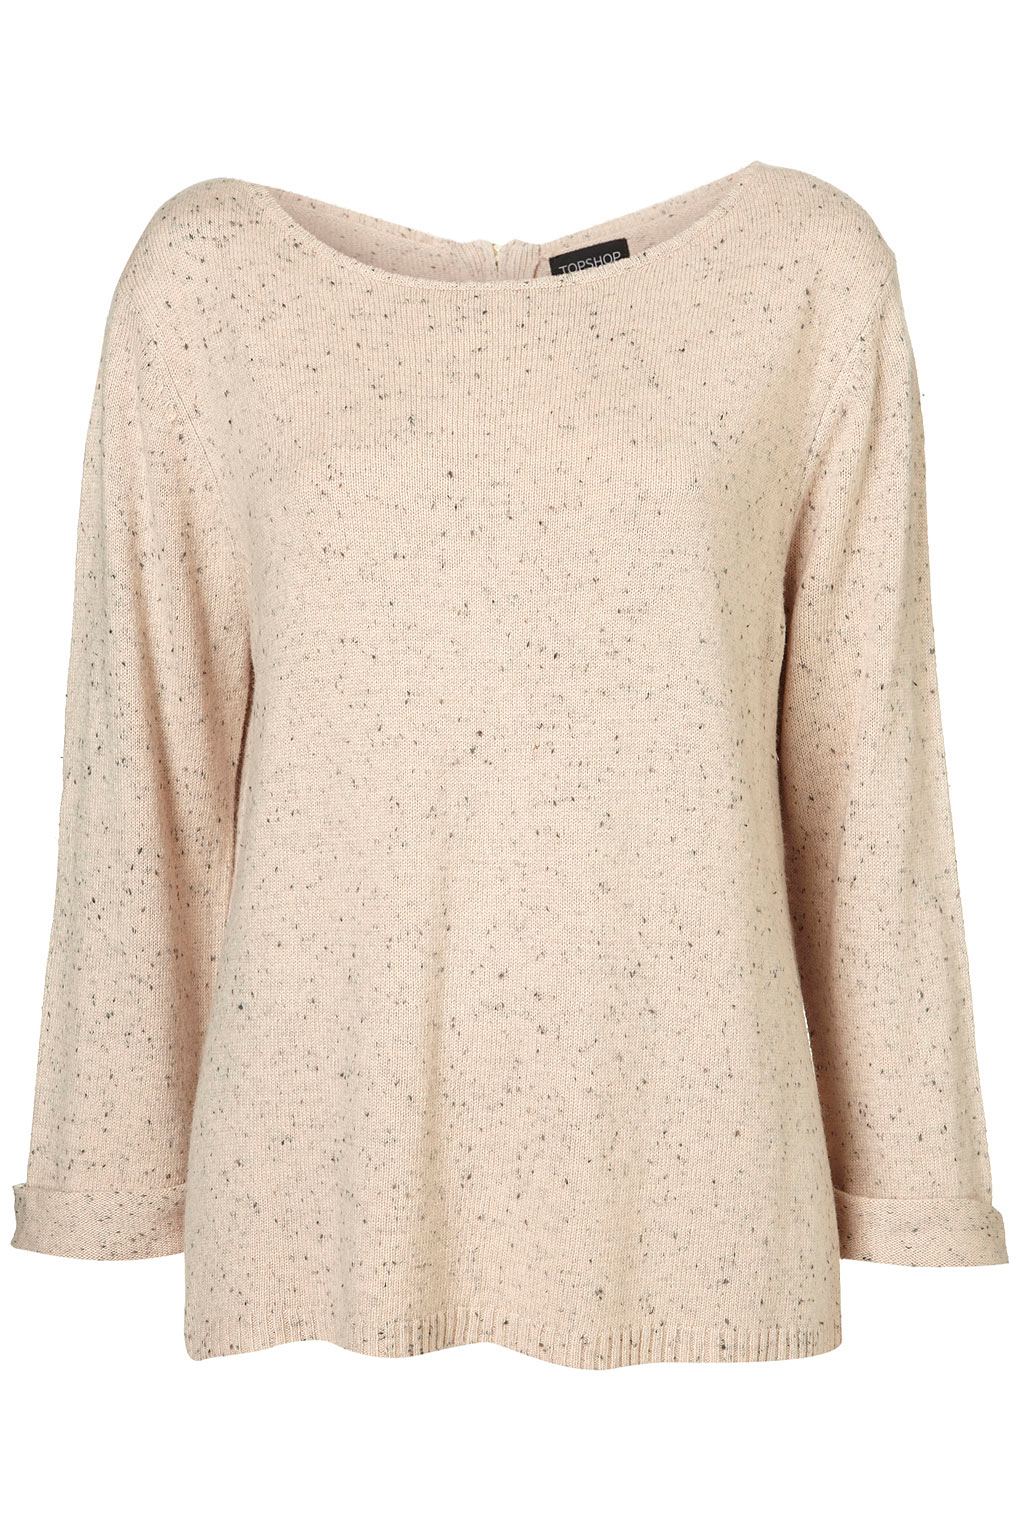 Lyst Topshop Knitted Fleck Neon Zip Jumper In Pink